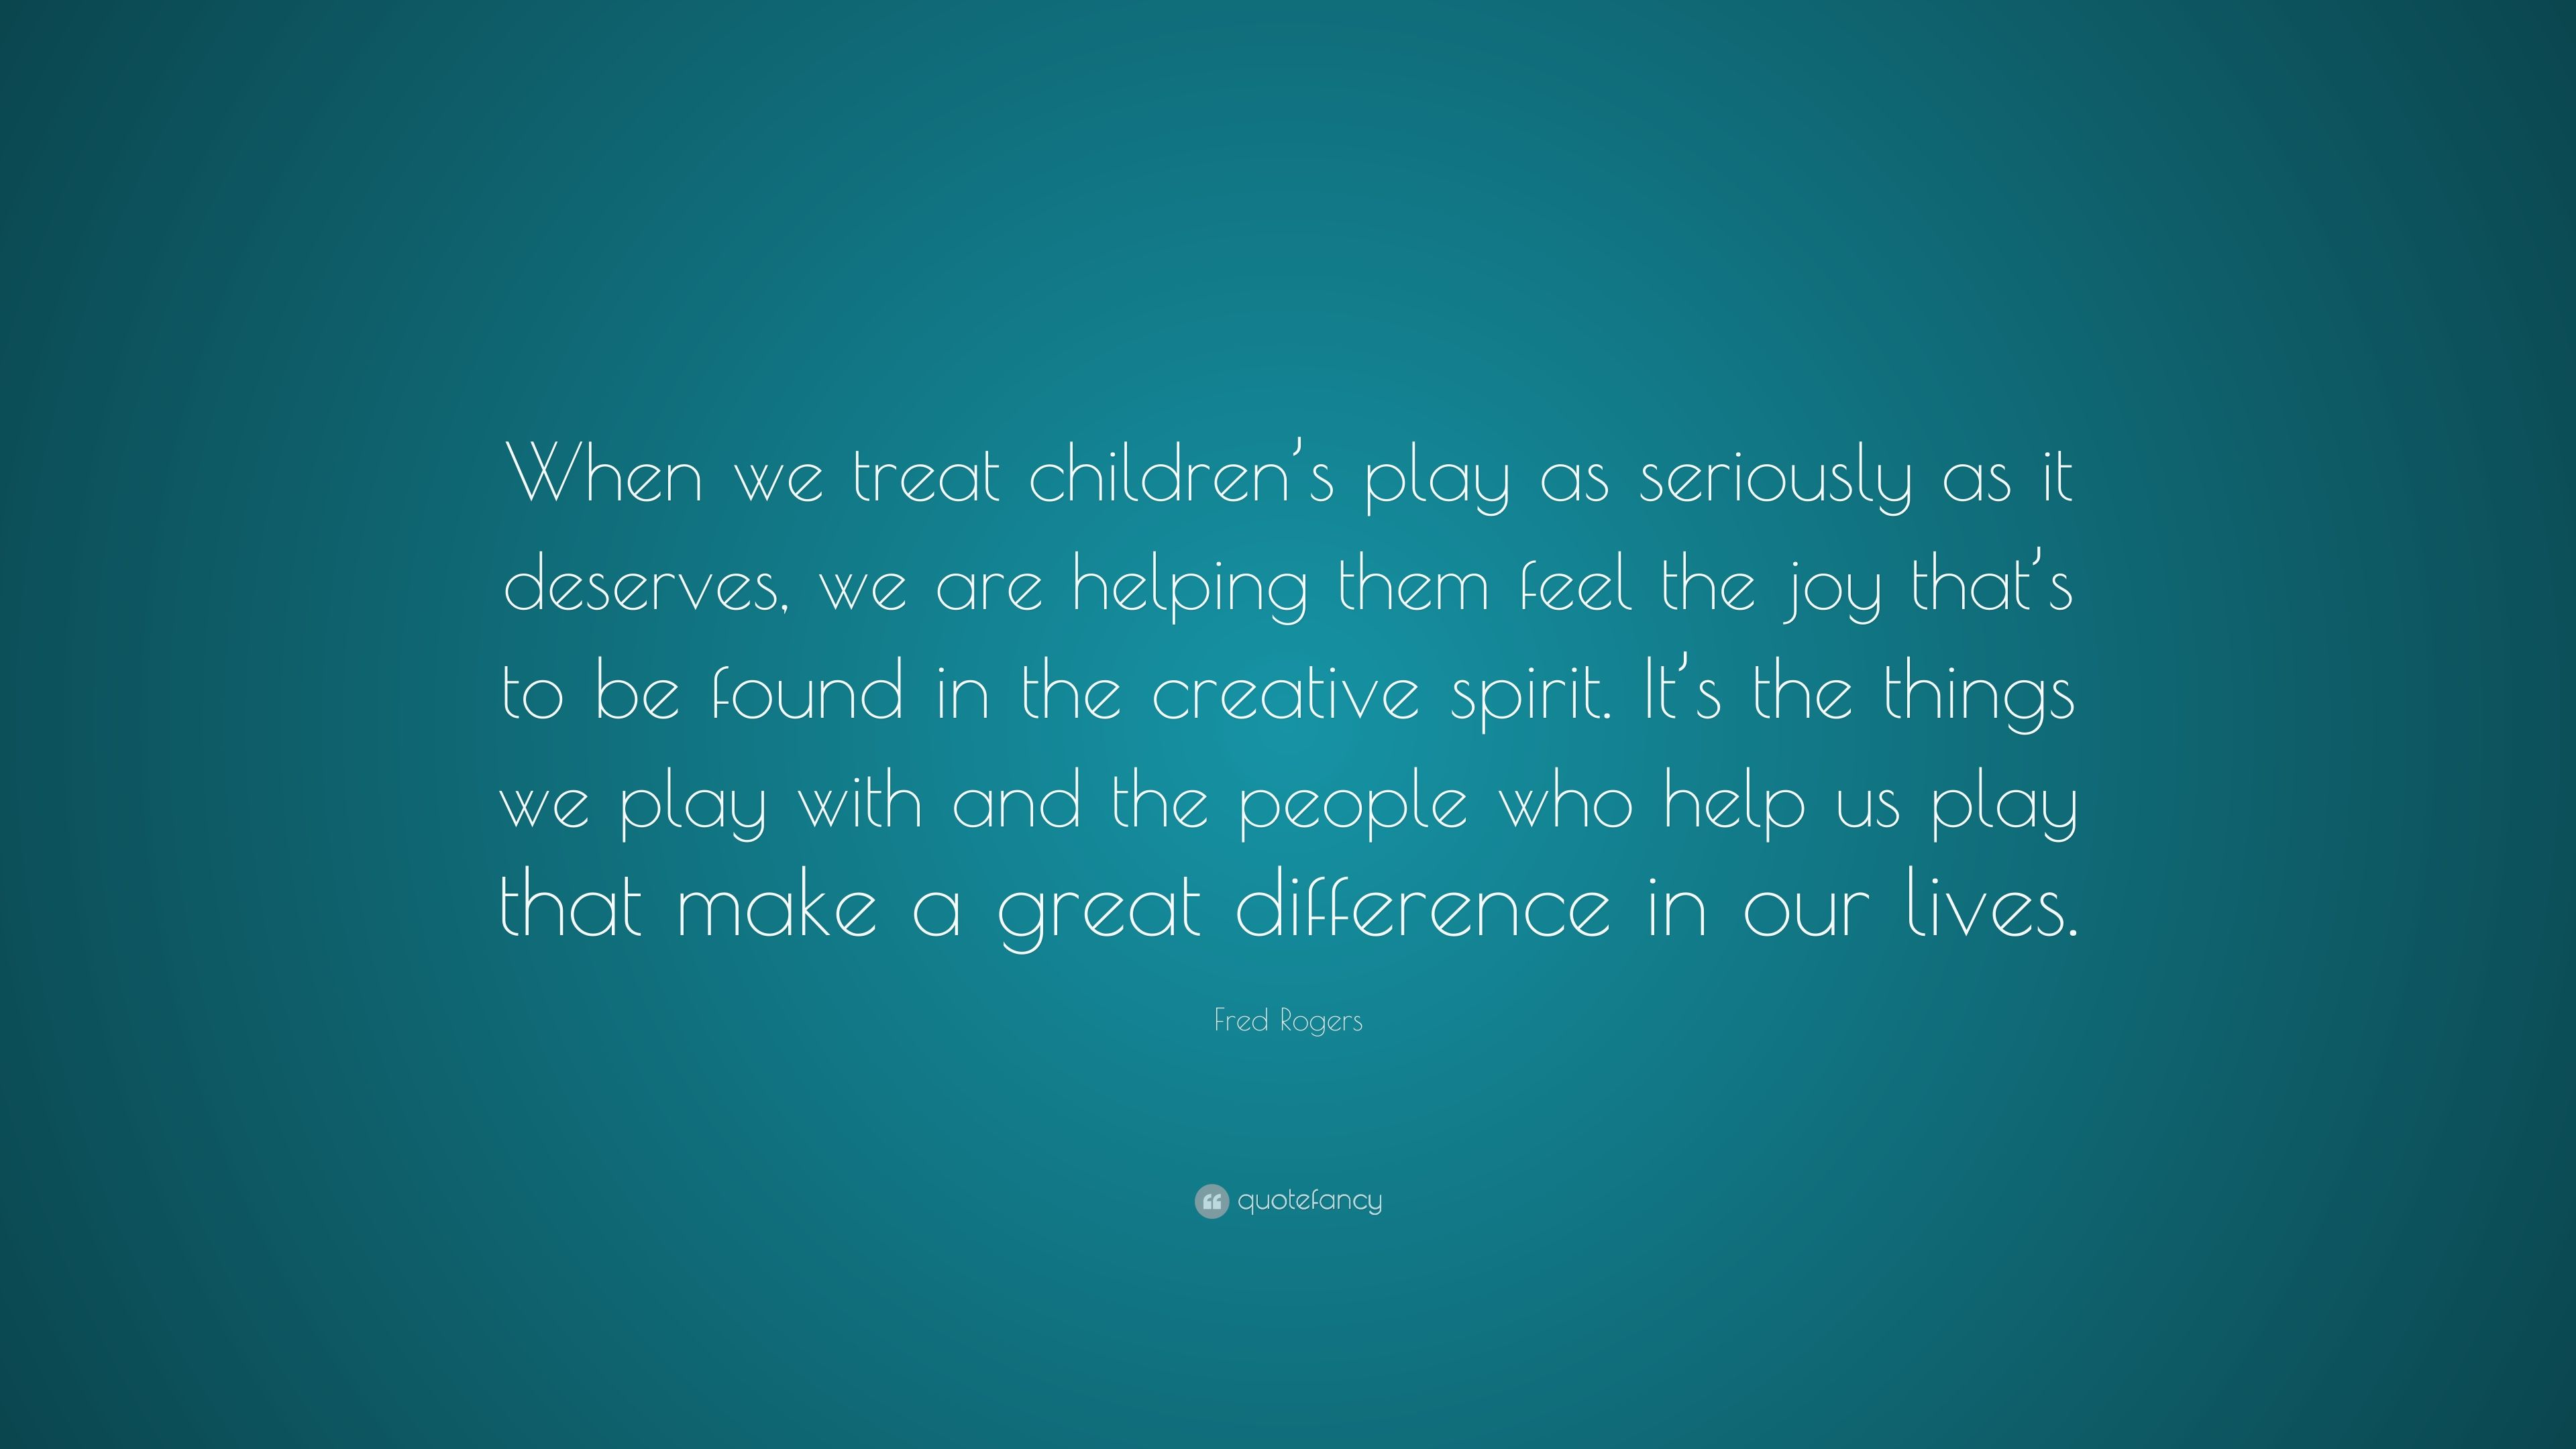 Fred Rogers Quote When We Treat Children S Play As Seriously As It Deserves We Are Helping Them Feel The Joy That S To Be Found In The Cr 10 Wallpapers Quotefancy